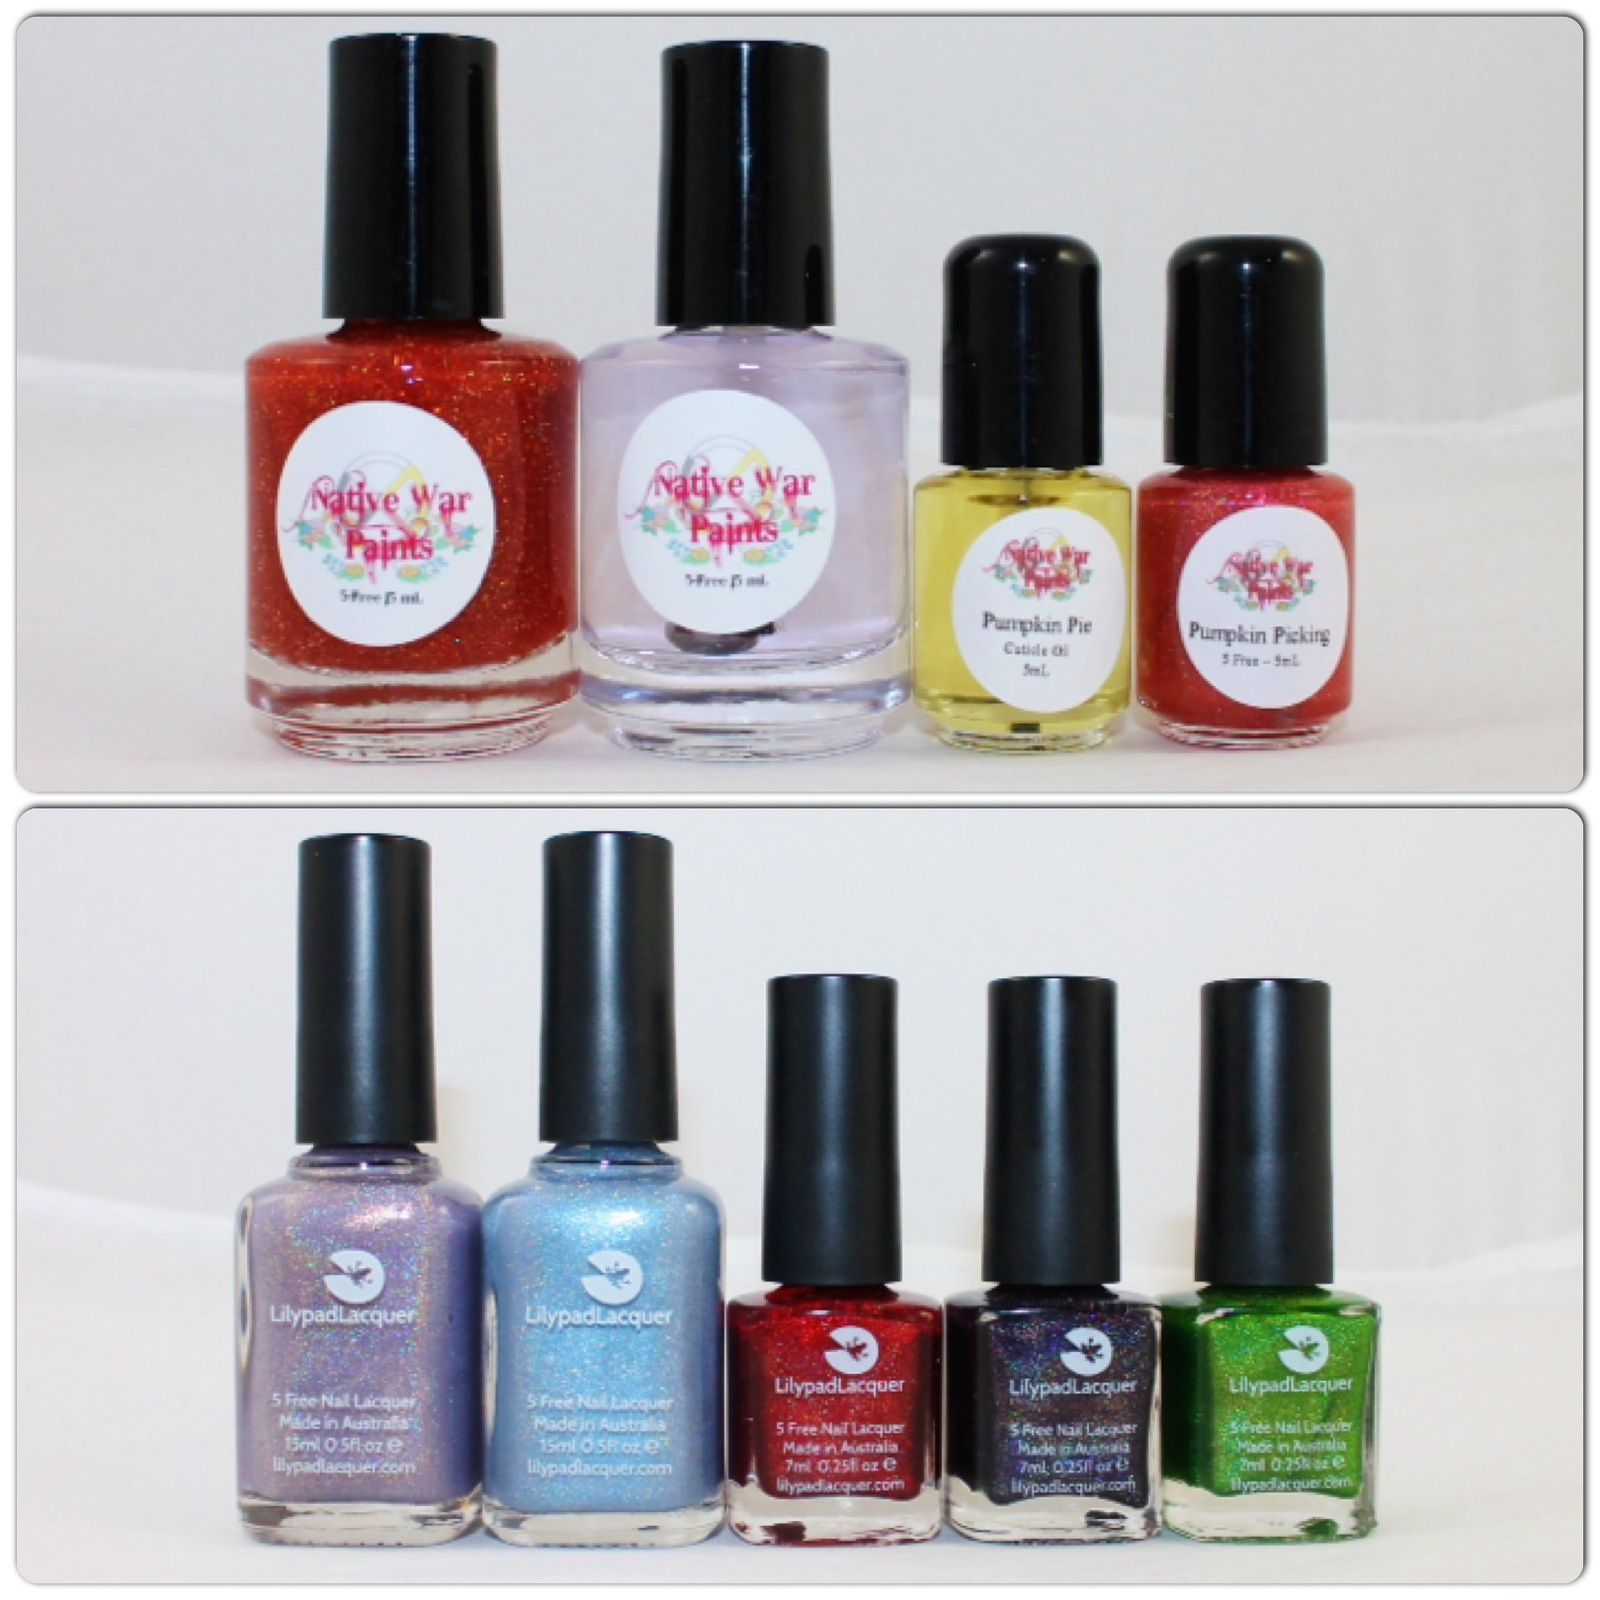 NWP Monthly Box - September 2016. Lilypad lacquer Glorious Day, Angels Sing, When Love Comes to Town, Atomic Apple & Nightshade.